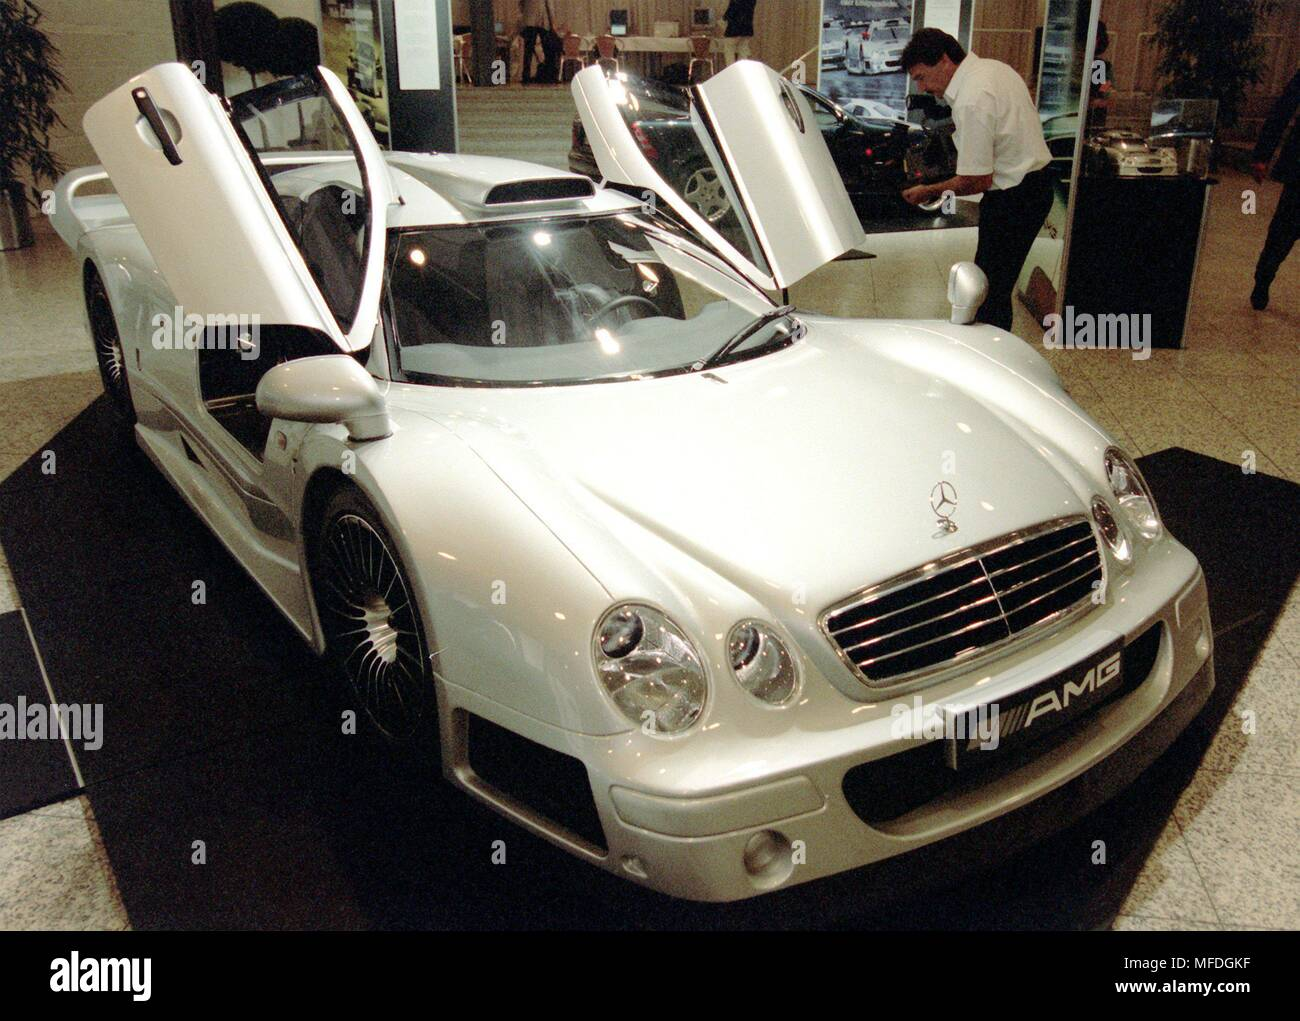 A street version of the Mercedes CLK-GTR, developed by the car refiner AMG, aufg. on 26.6.1998 in the Stuttgart Mercedes-Benz Museum. The road version of the touring car costs around one million marks. The Daimler-Benz Group will take over 51 percent of the shares in AMG GmbH (Affalterbach/Baden-Wurttemberg) as of 1 January next year. The remaining shares will sell upright in two stages by January 1, 2009 to Daimler, said Daimler-Benz AG on June 26 with. With the acquisition of the car refiner, Daimler is gaining a foothold in the growing market for high performance sports cars. | usage worl - Stock Image